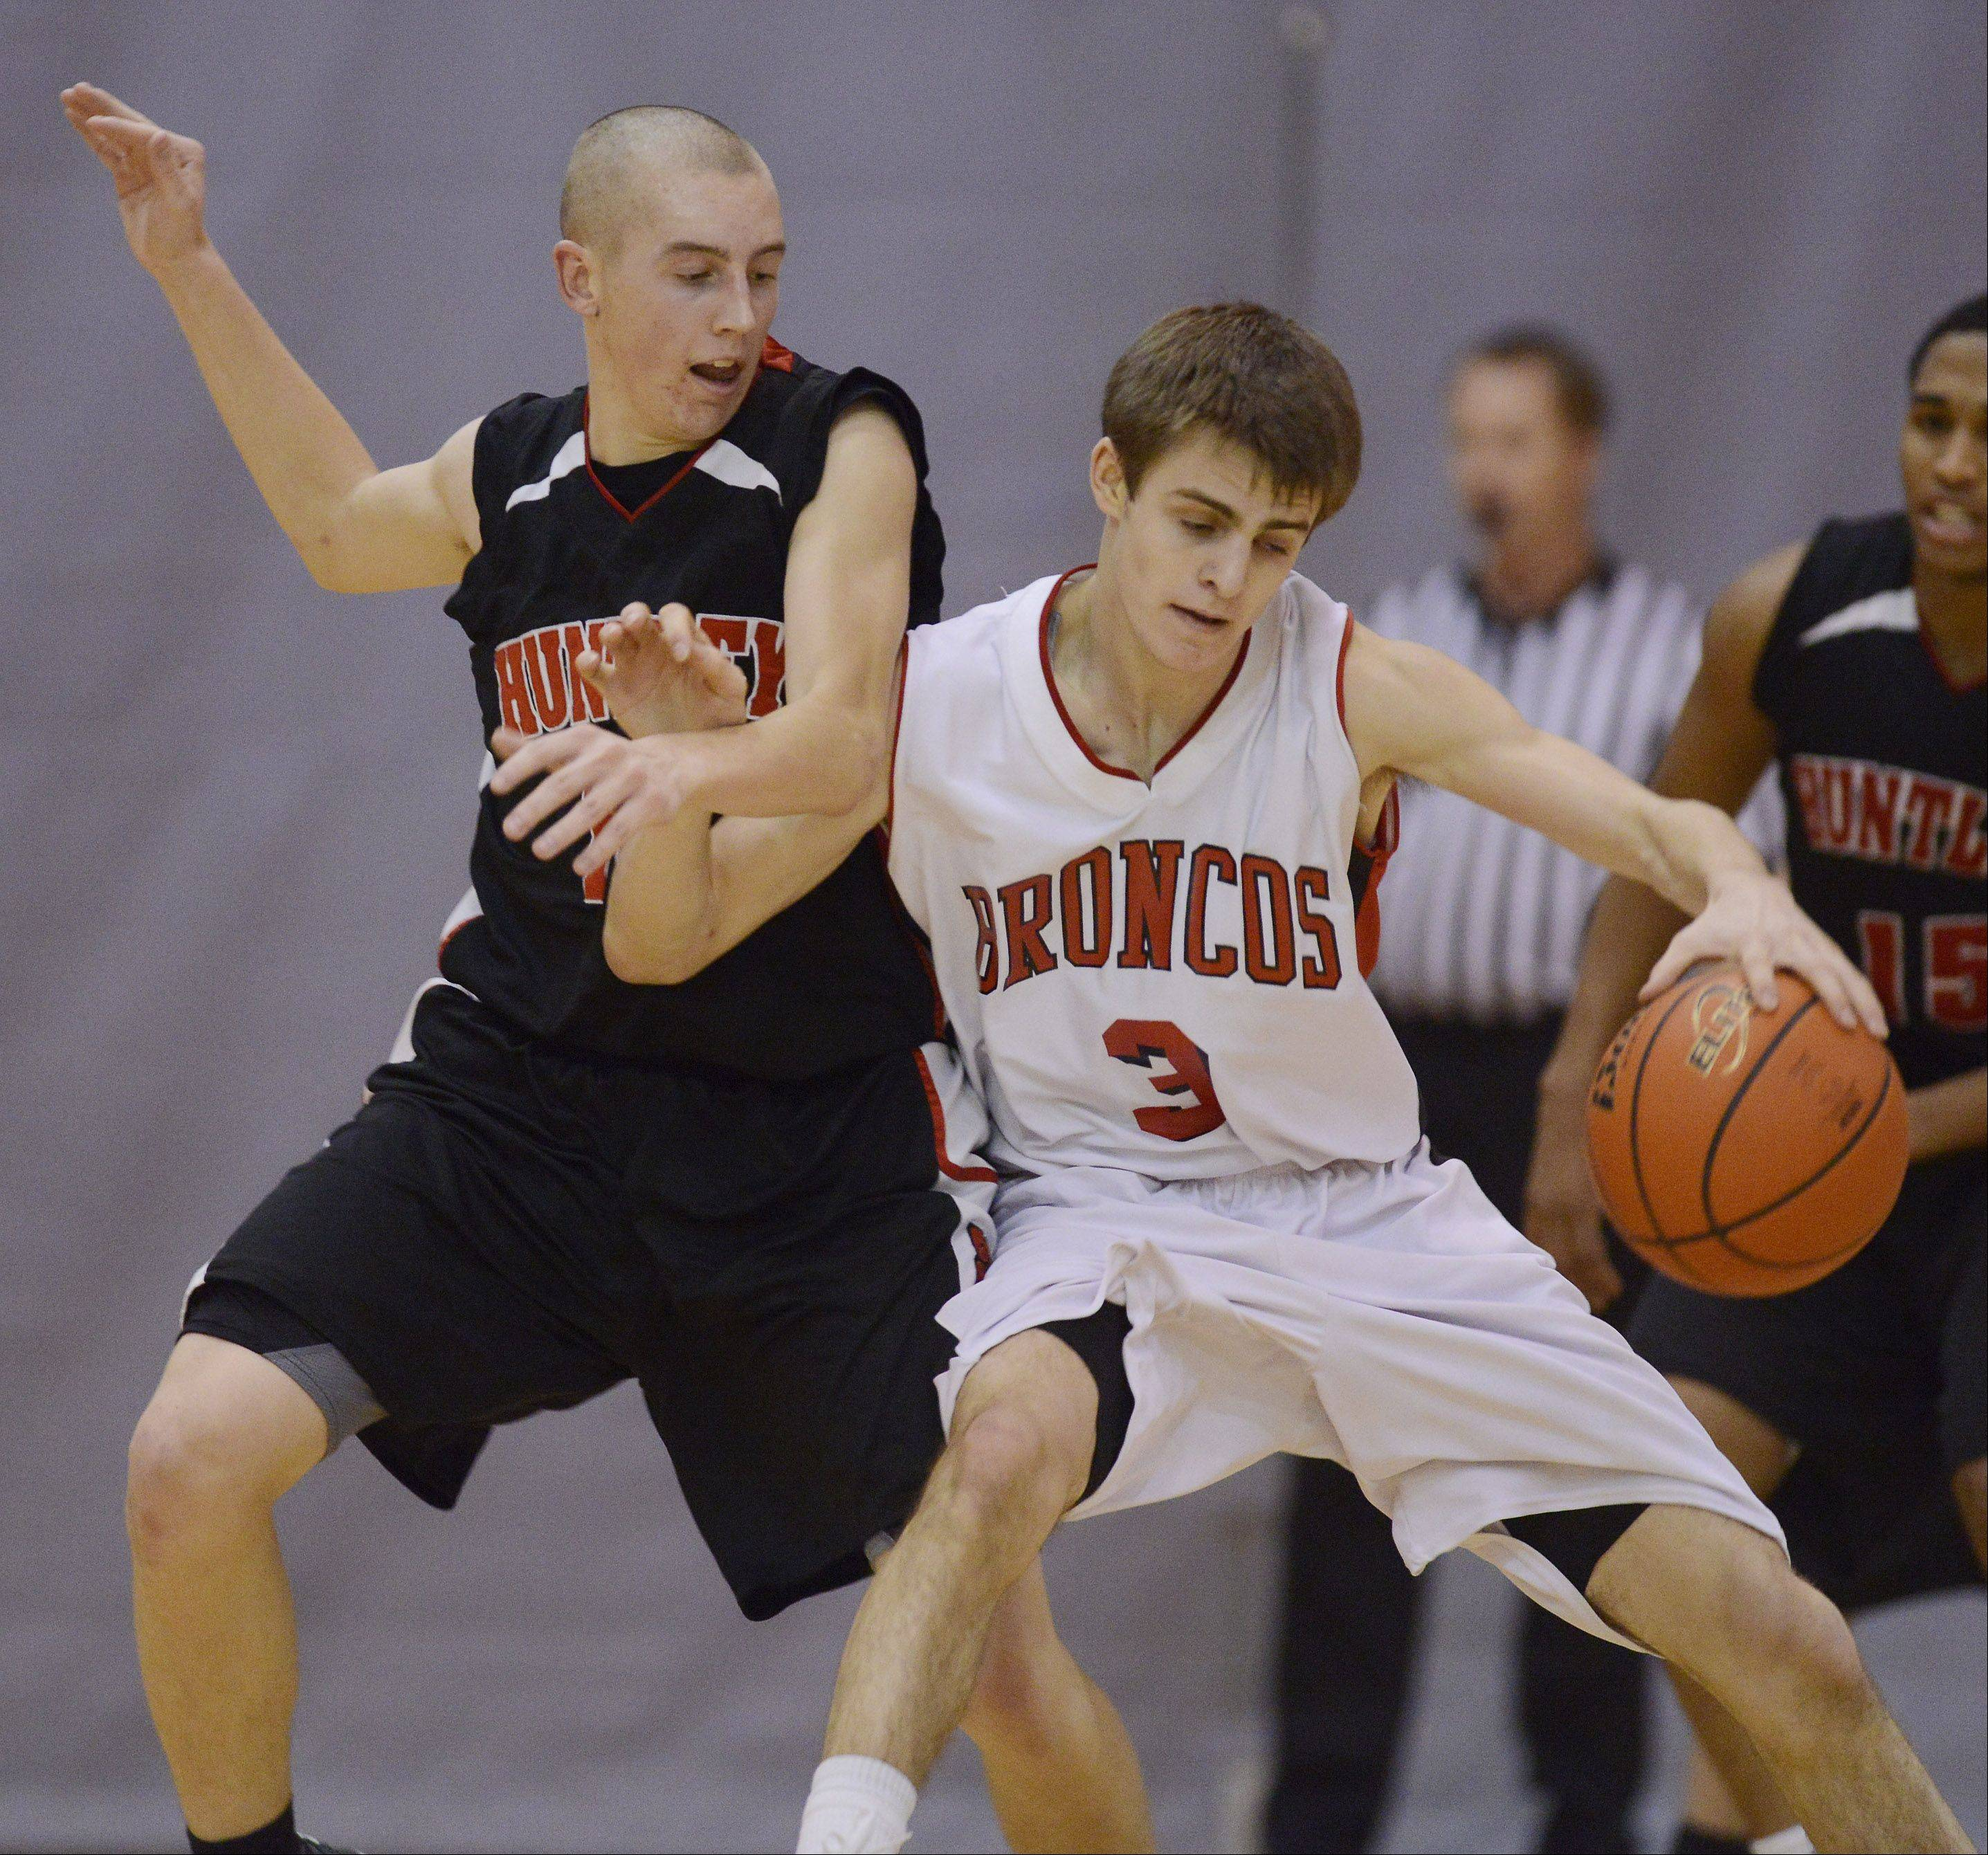 Third-quarter surge lifts Barrington past Huntley